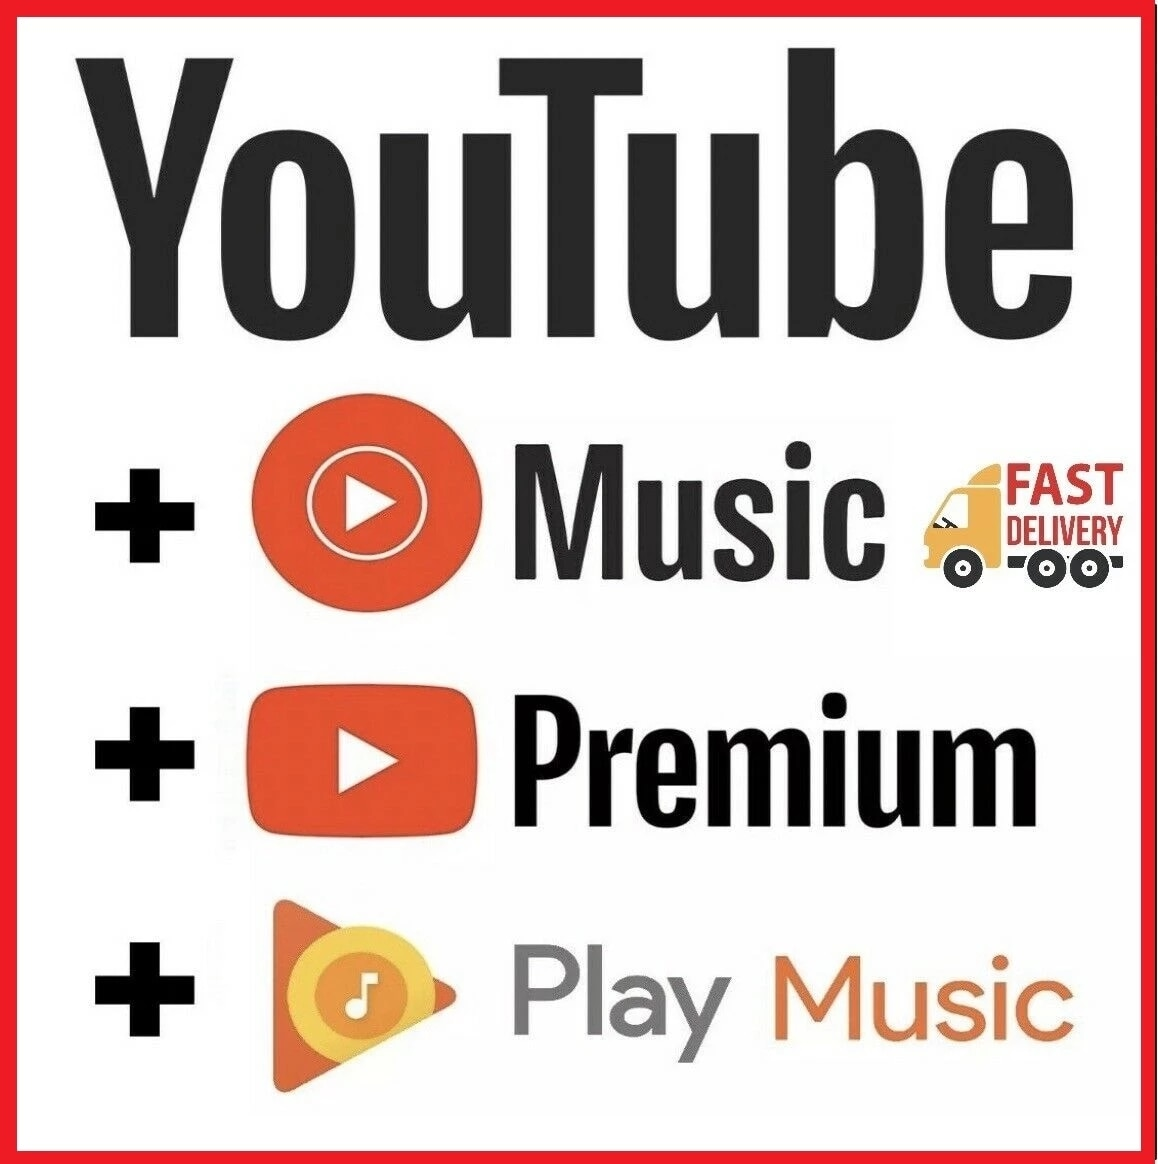 2021 Youtubes Premium and Youtubes Music Working in Android IOS tablette PC Iphone guaranteed Fast Deleviry